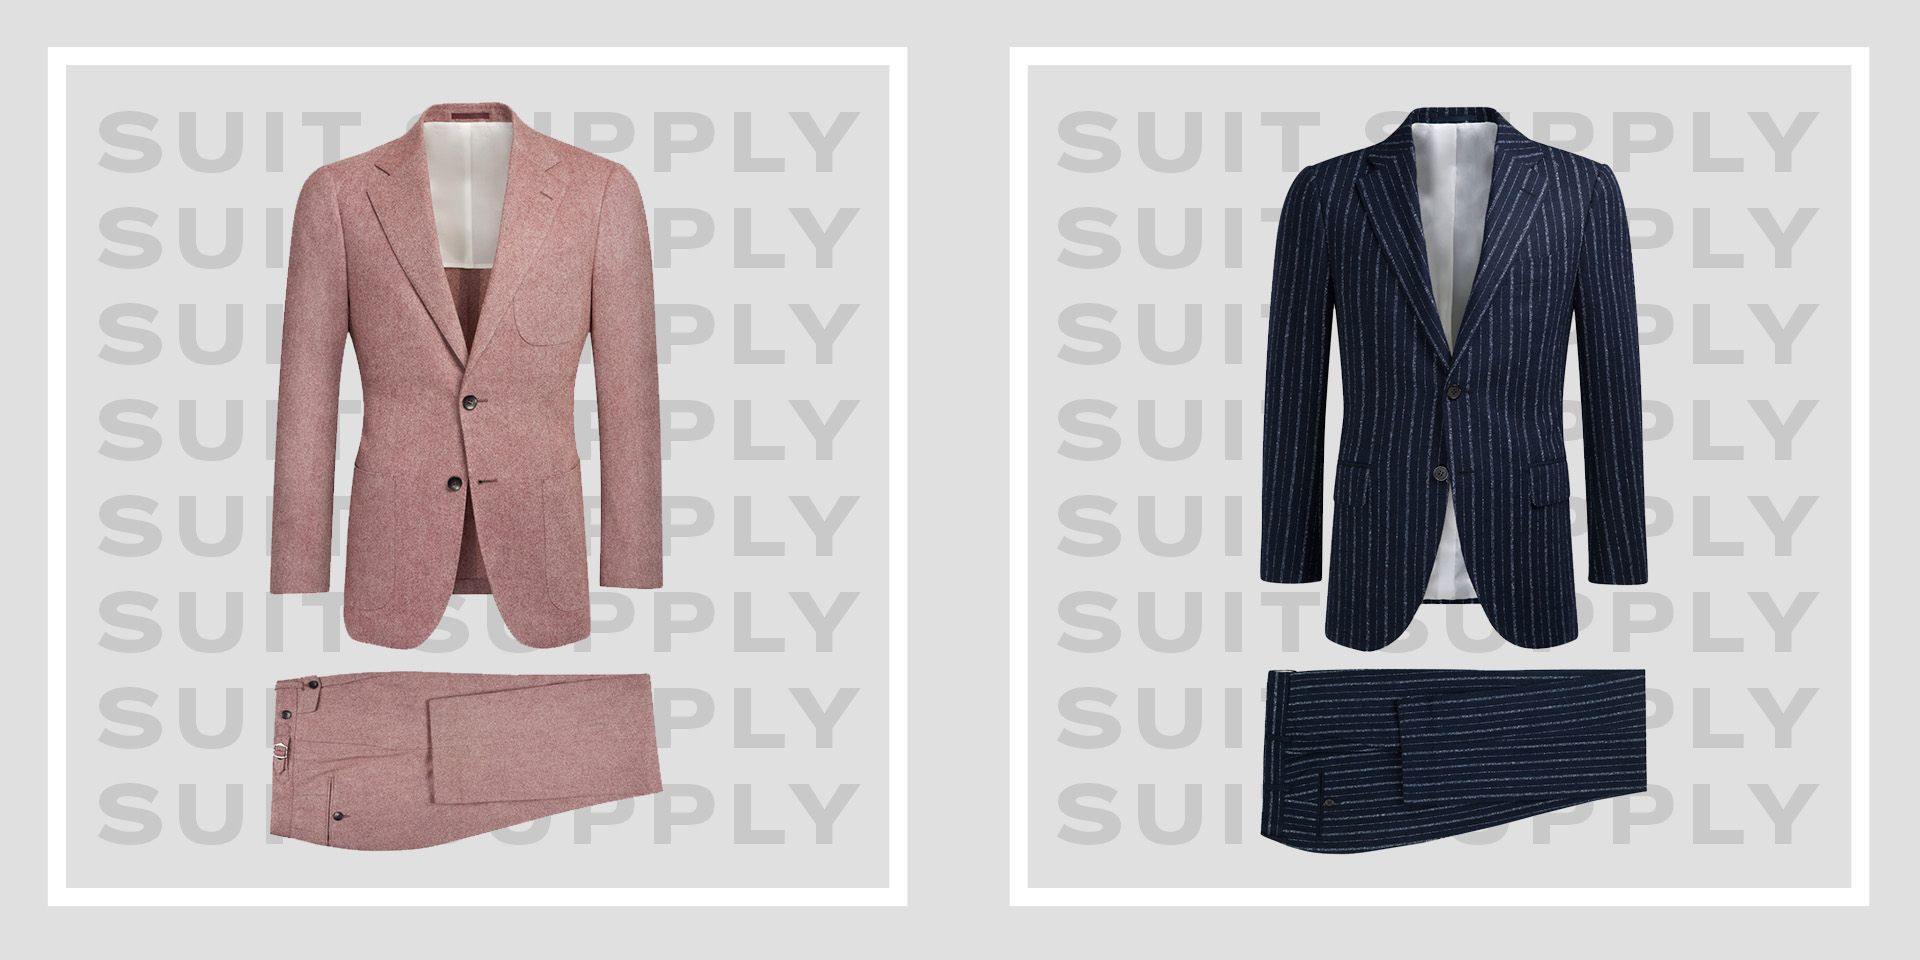 Suitsupply's Massive, Limited-Time-Only Outlet Sale Is Finally Back